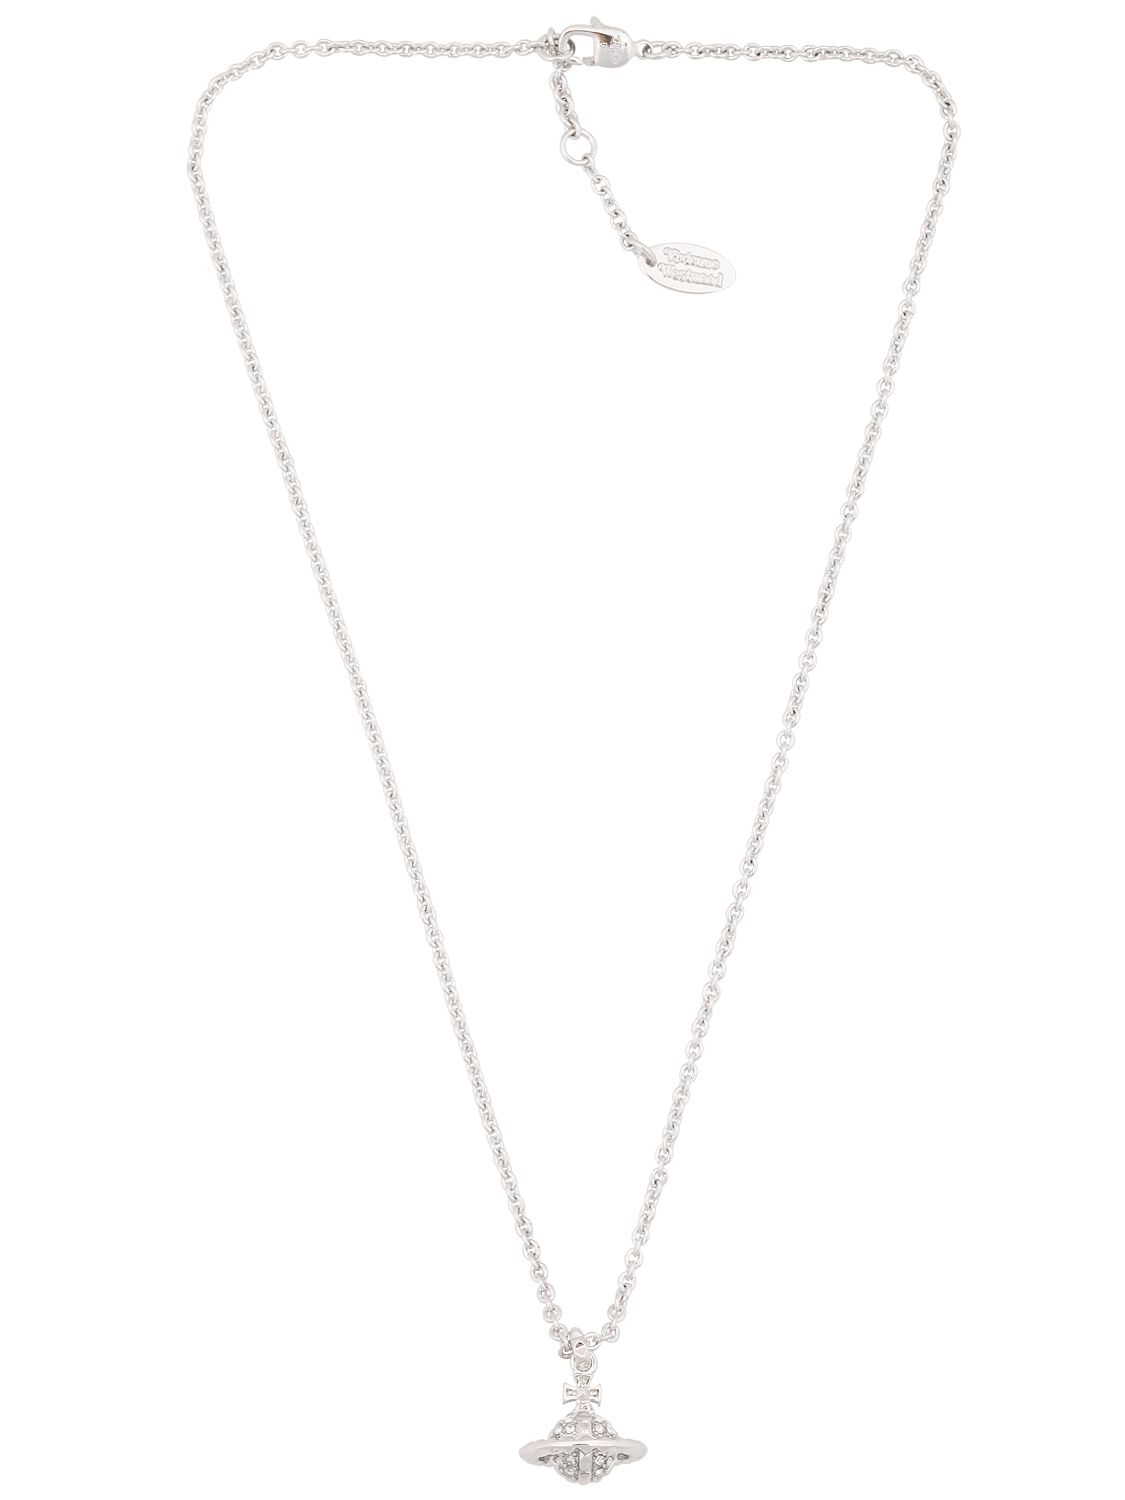 aa6f3efc0fbbcc Vivienne Westwood Mayfair 3d Small Orb Pendant Necklace in Metallic ...